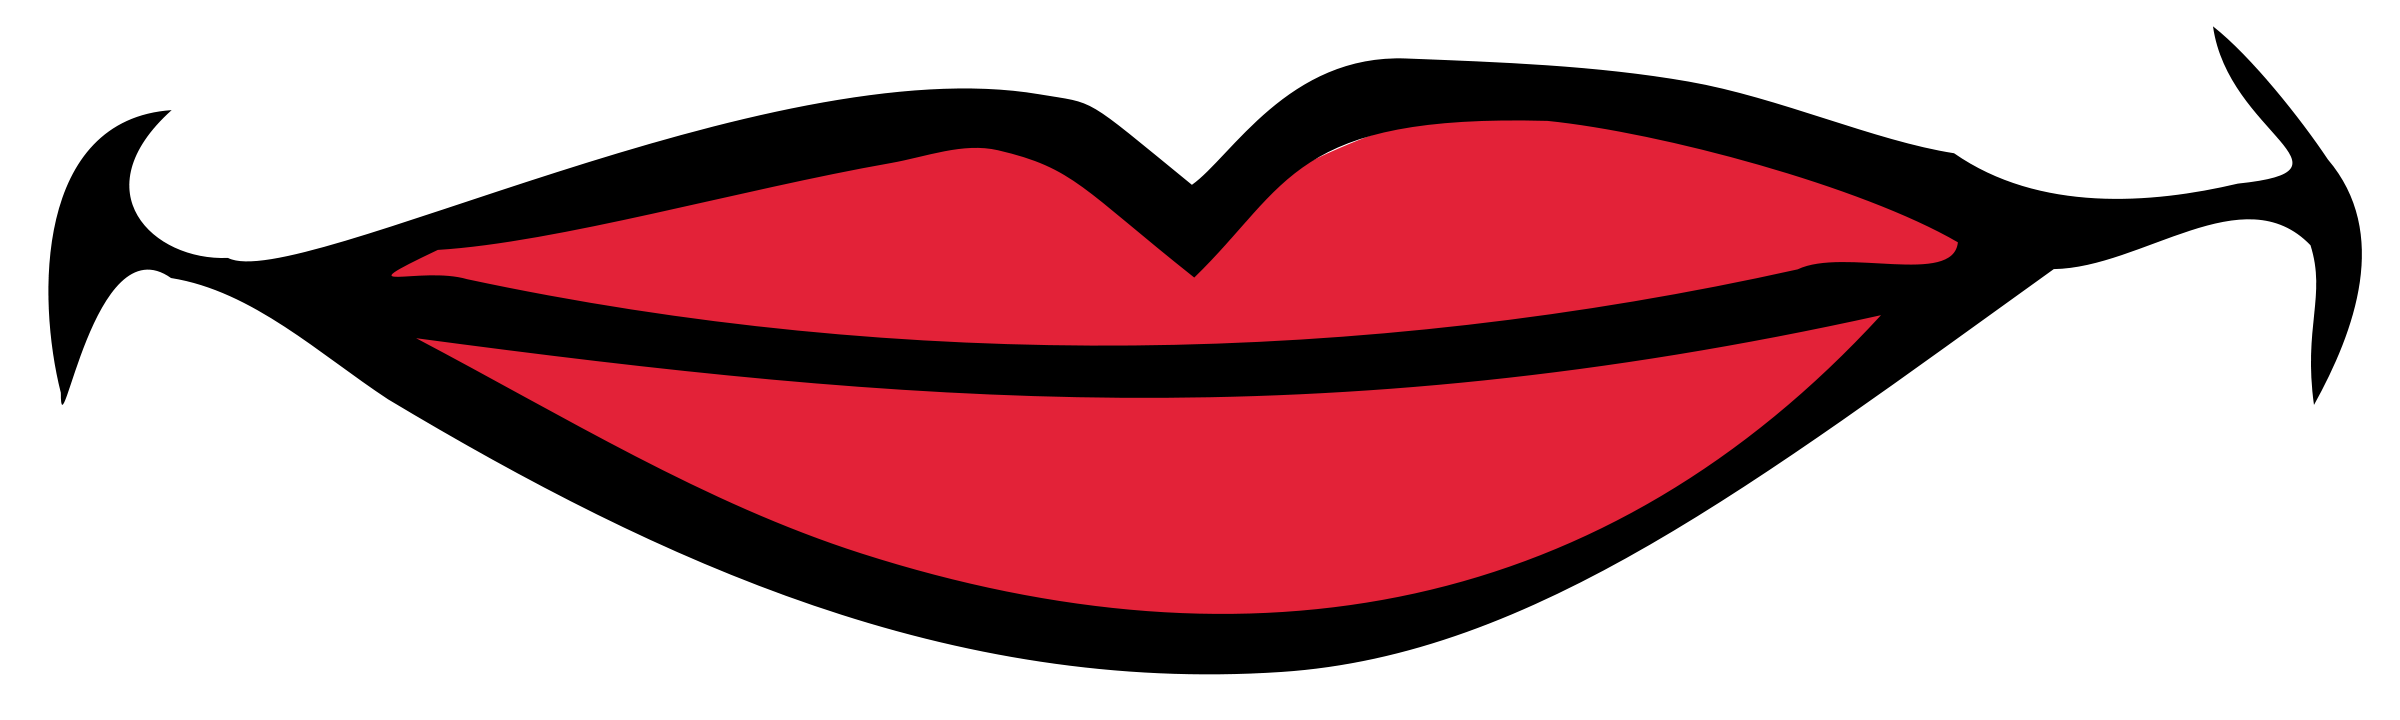 2400x720 Smile Lips Clipart Free Clip Art Of 7 Clipartwork